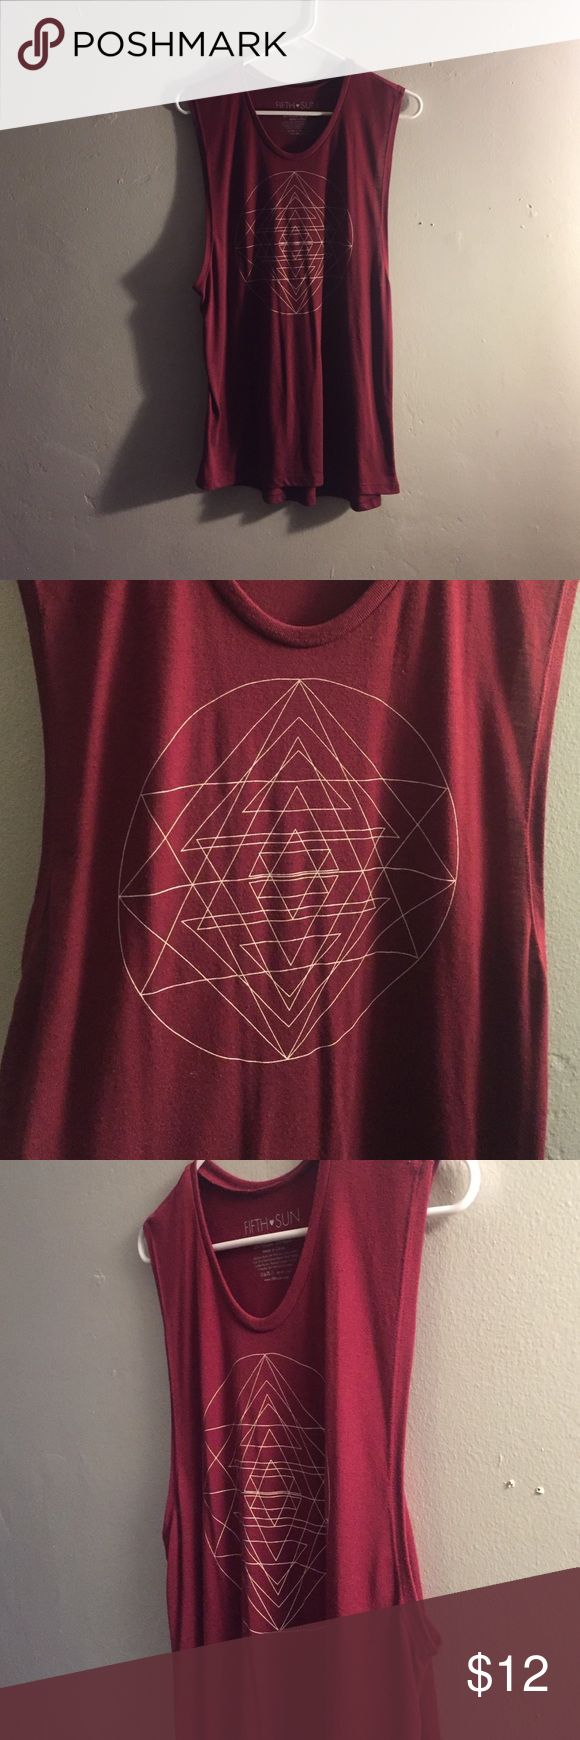 Red muscle shirt with design Geometric design on front. Longer red tunic. Tops Muscle Tees